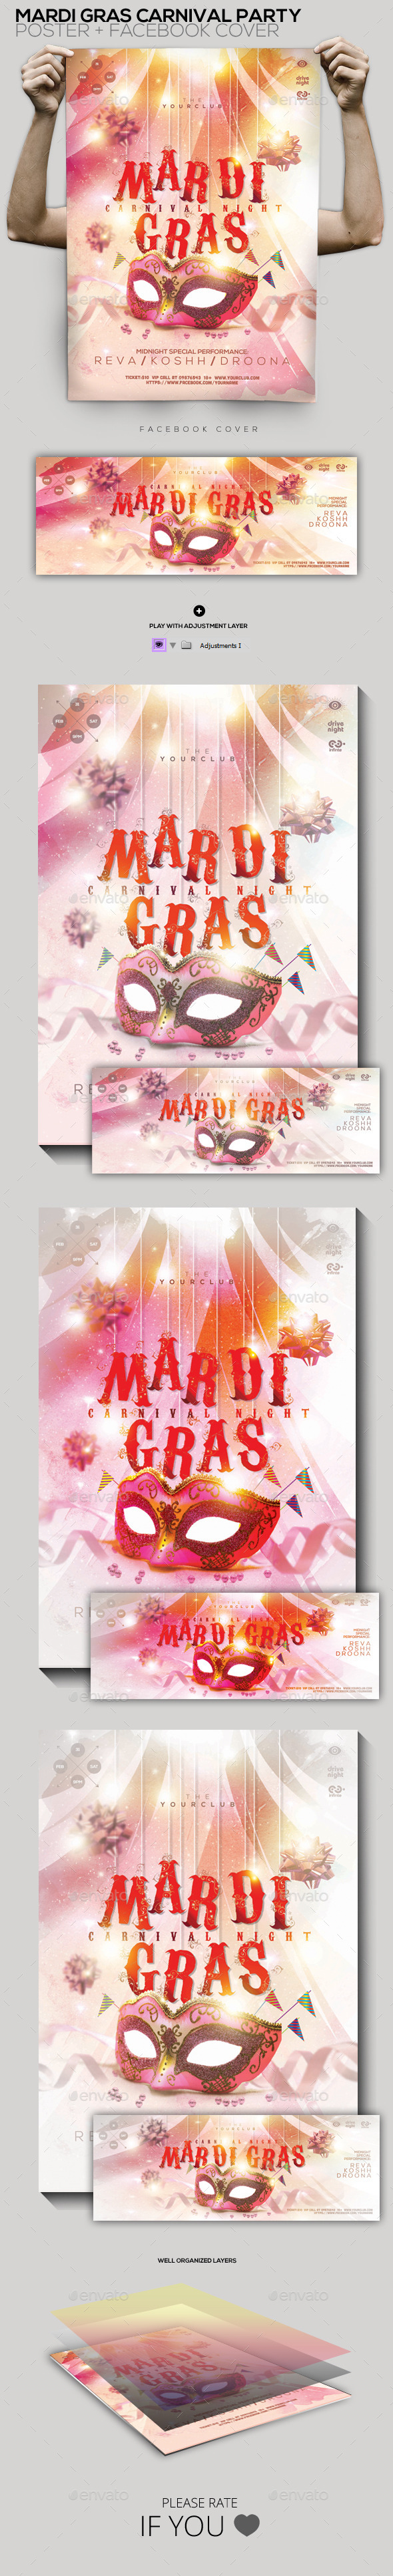 Mardi Gras Carnival Party Flyer/Poster/Facebook - Holidays Events